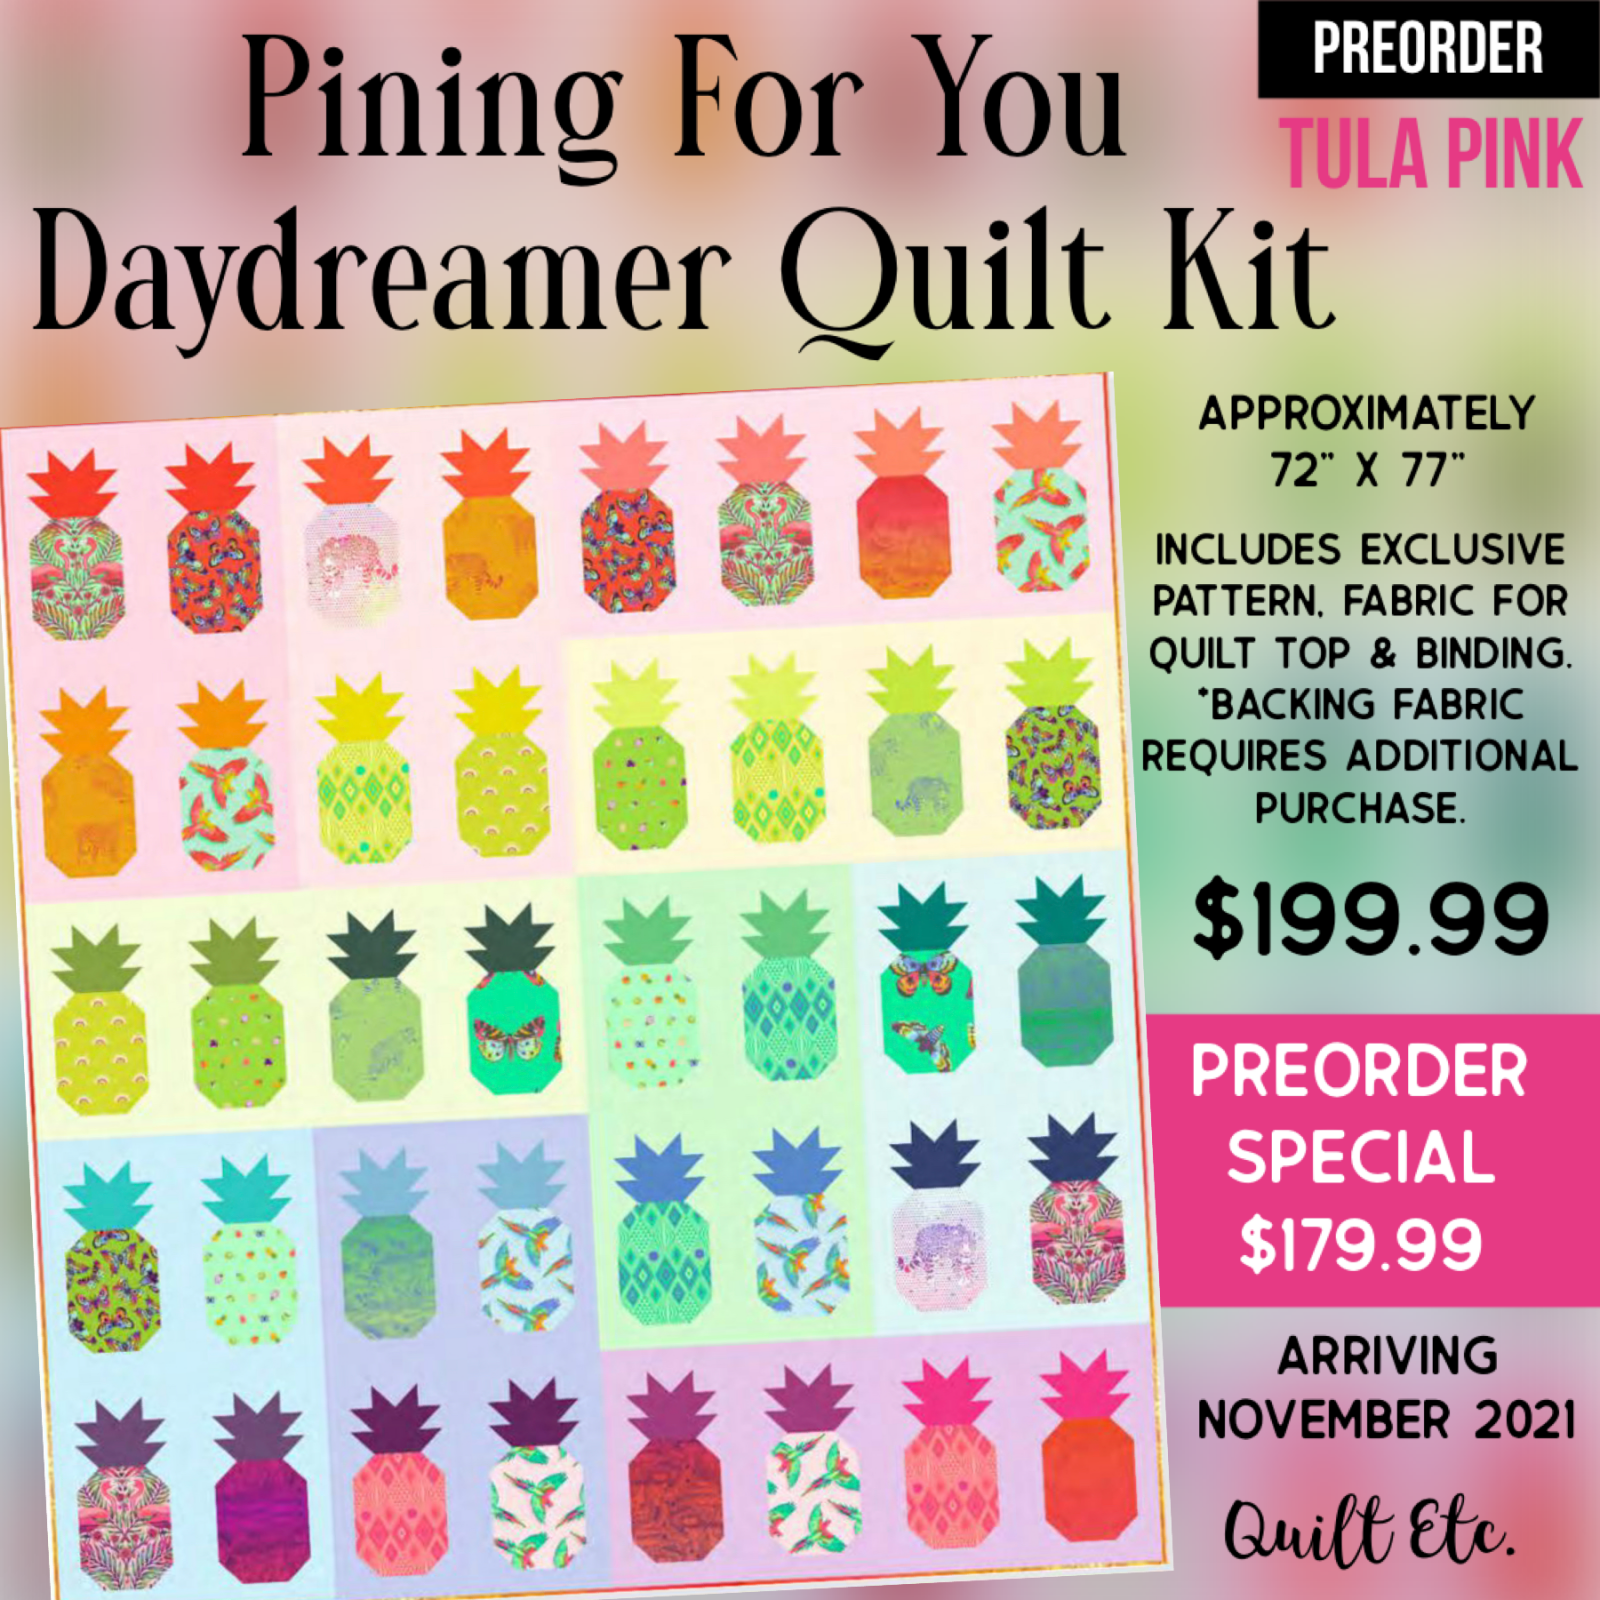 PREORDER Pining For You Daydreamer Quilt Kit